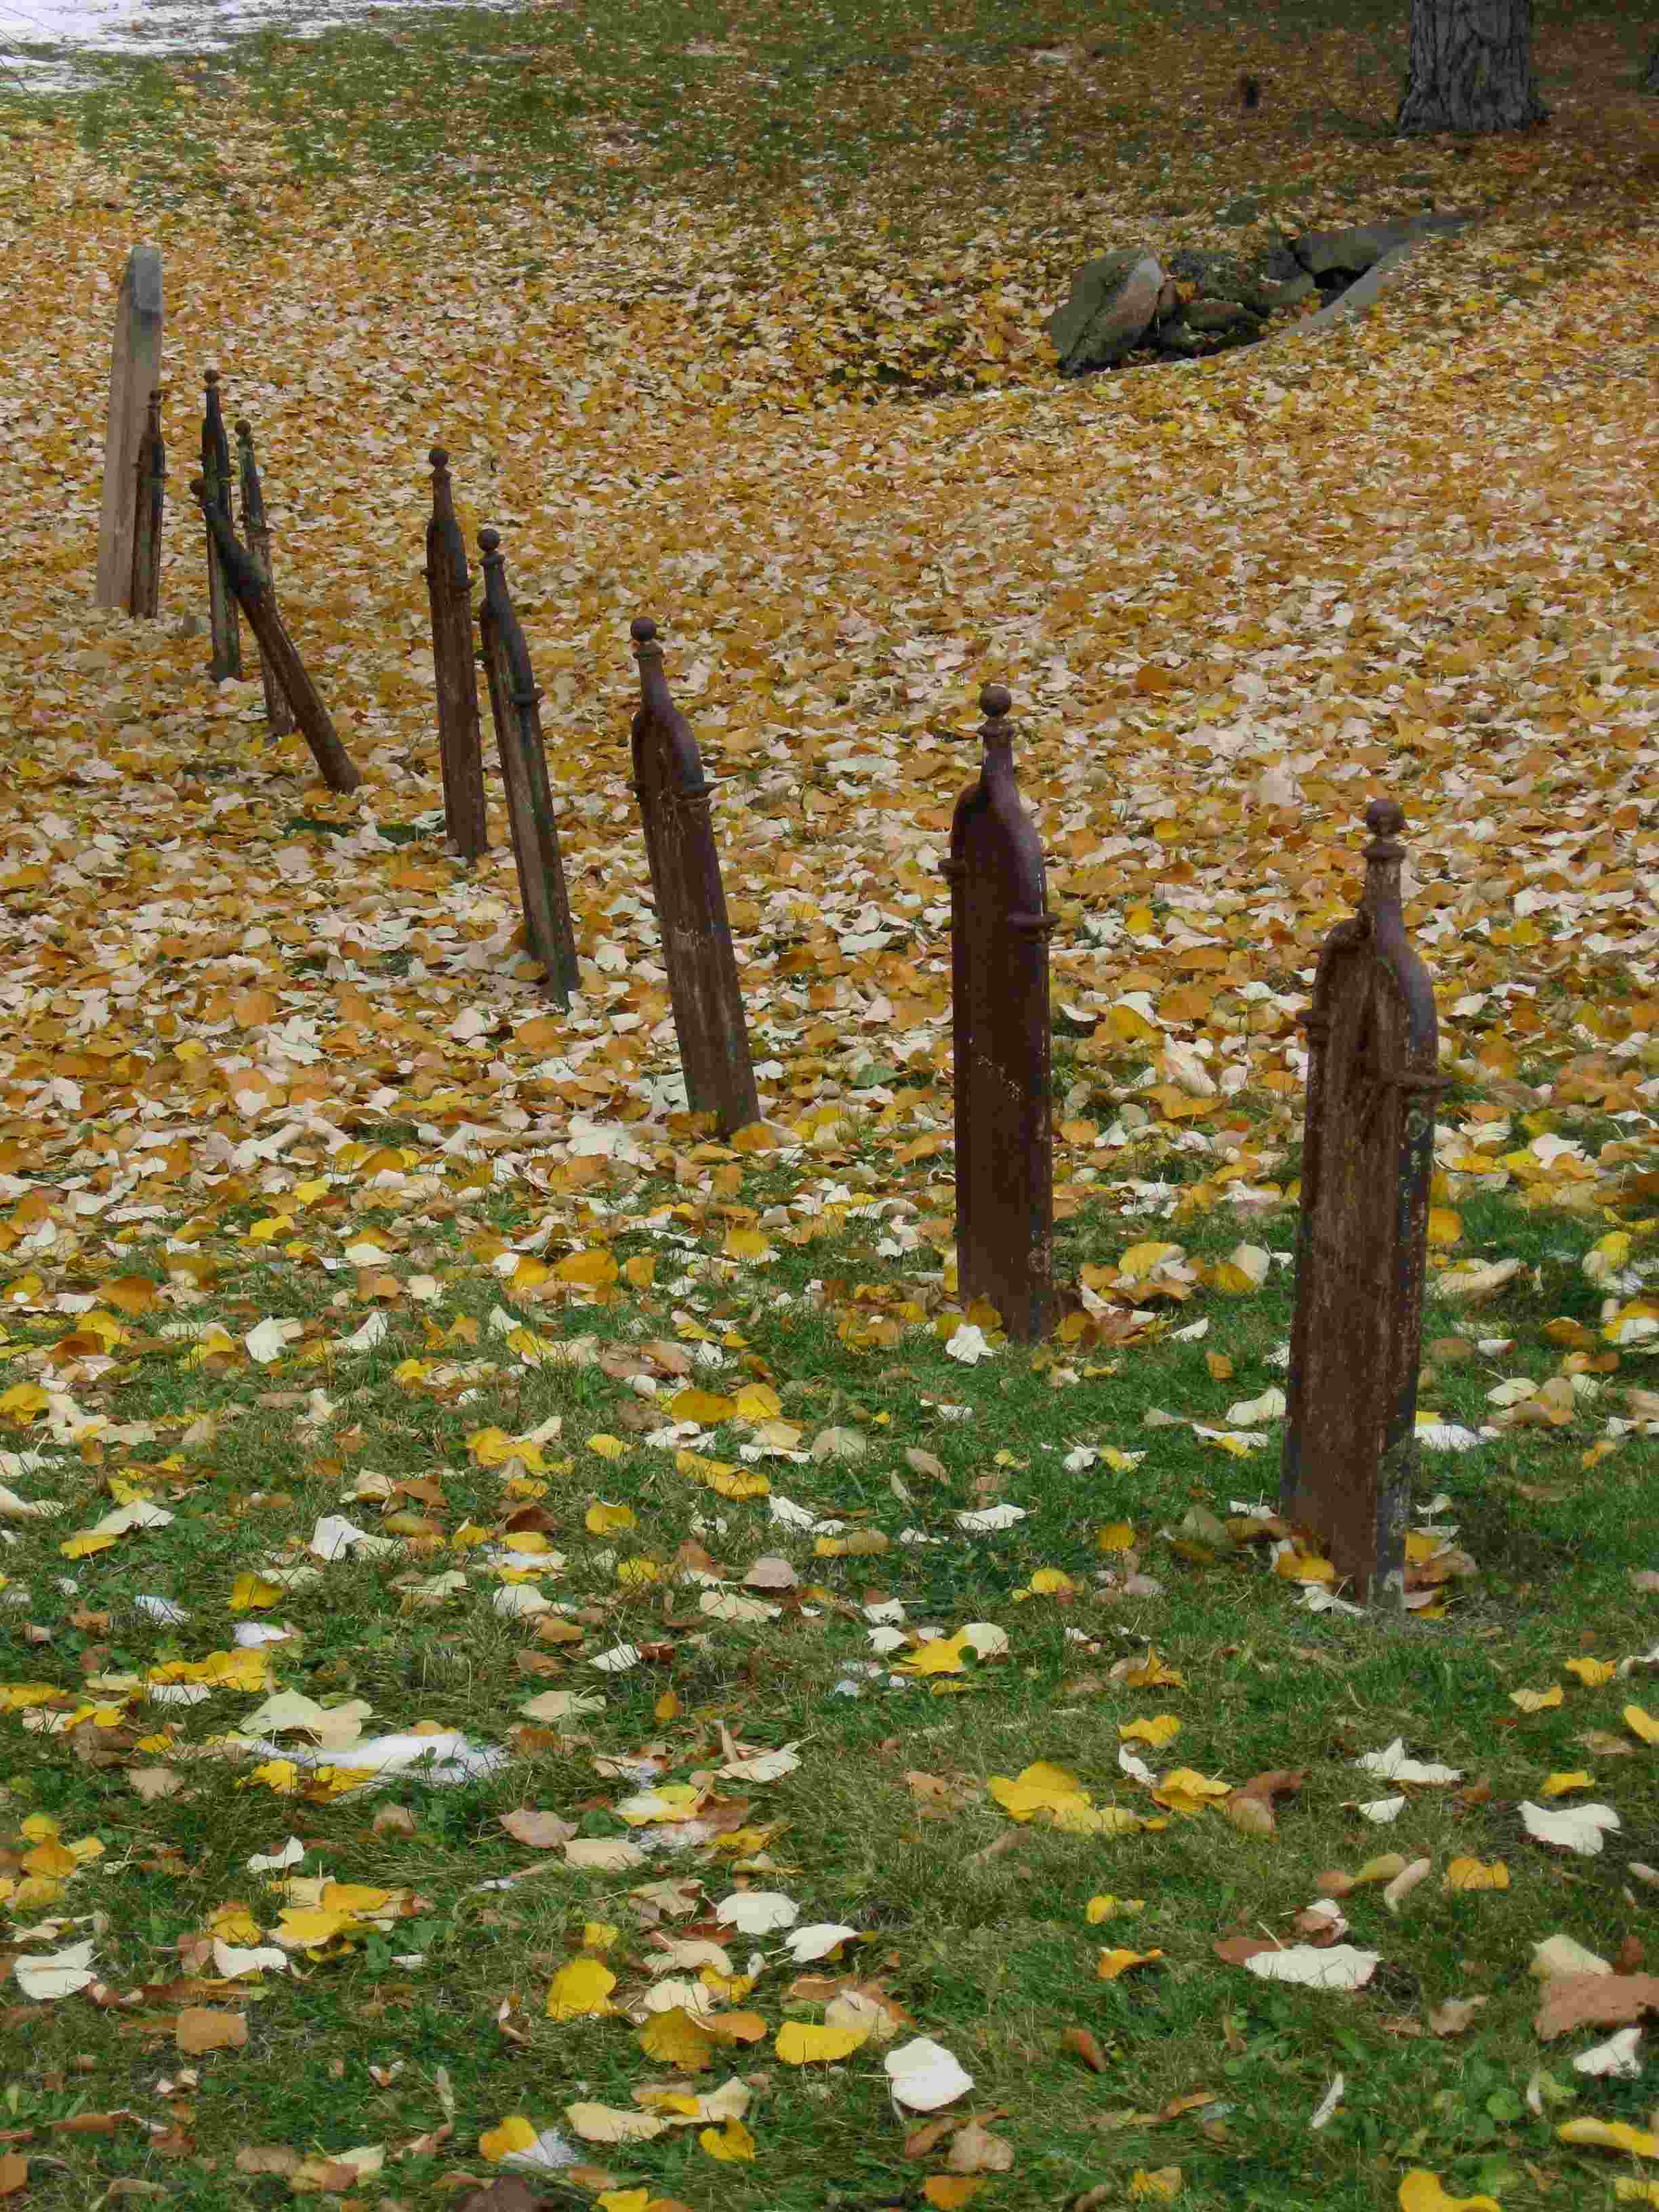 Old Grave Markers in Autumn